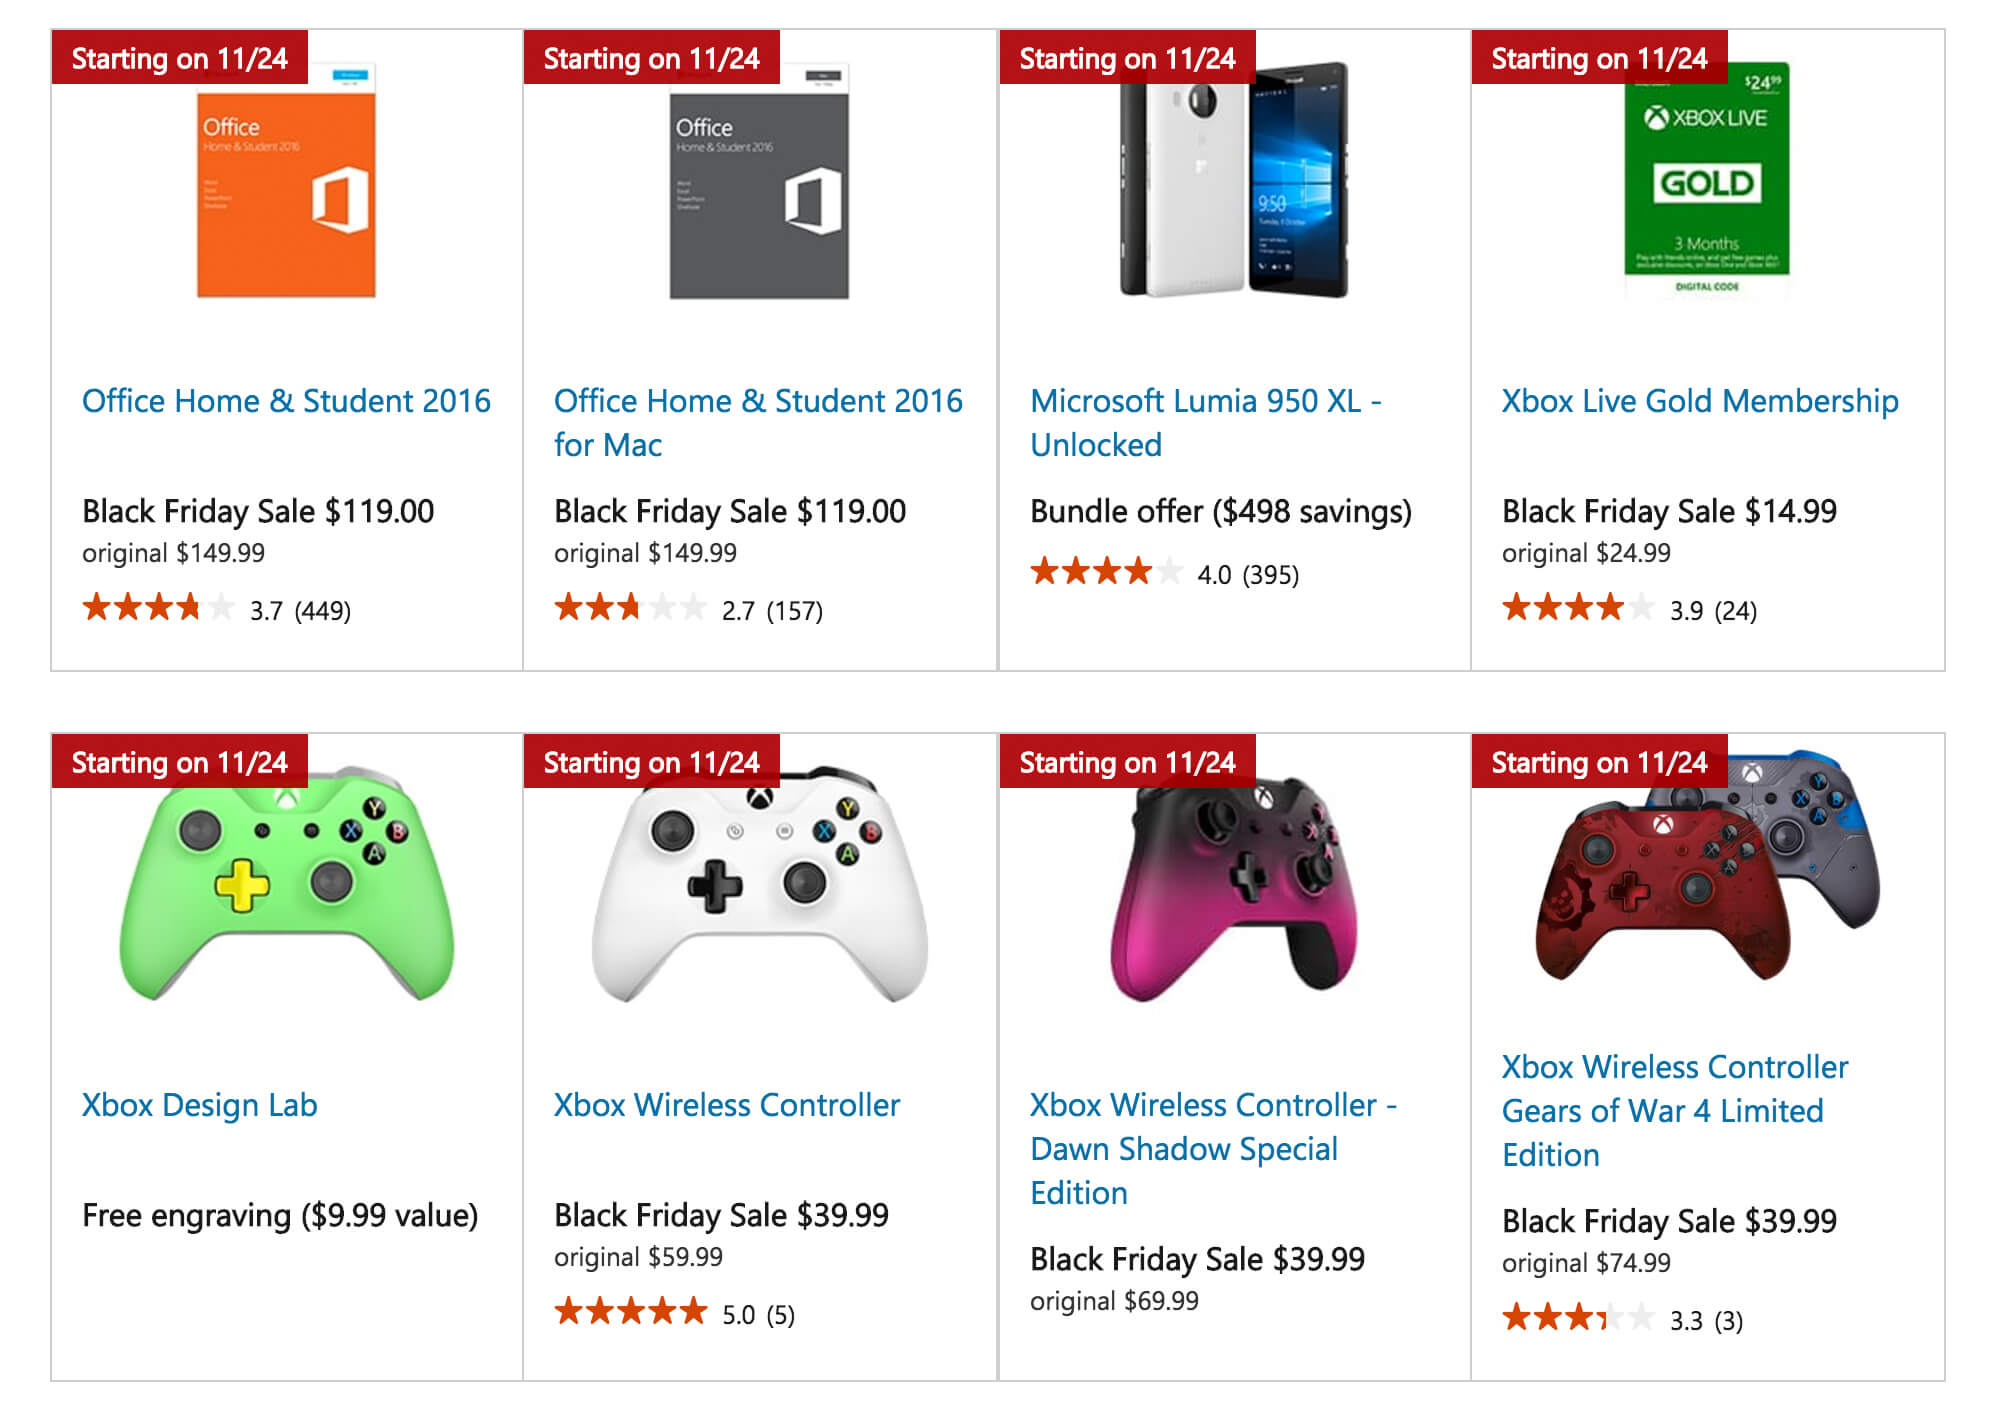 Microsoft Office Black Friday & Cyber Monday Instant Off Deals. Microsoft Store Black Friday & Cyber Monday deals on Microsoft Office suites are available now. The software maker offers savings on Microsoft Office Home 1-year subscriptions and Office Home & Student traditional one-time-pay edition.